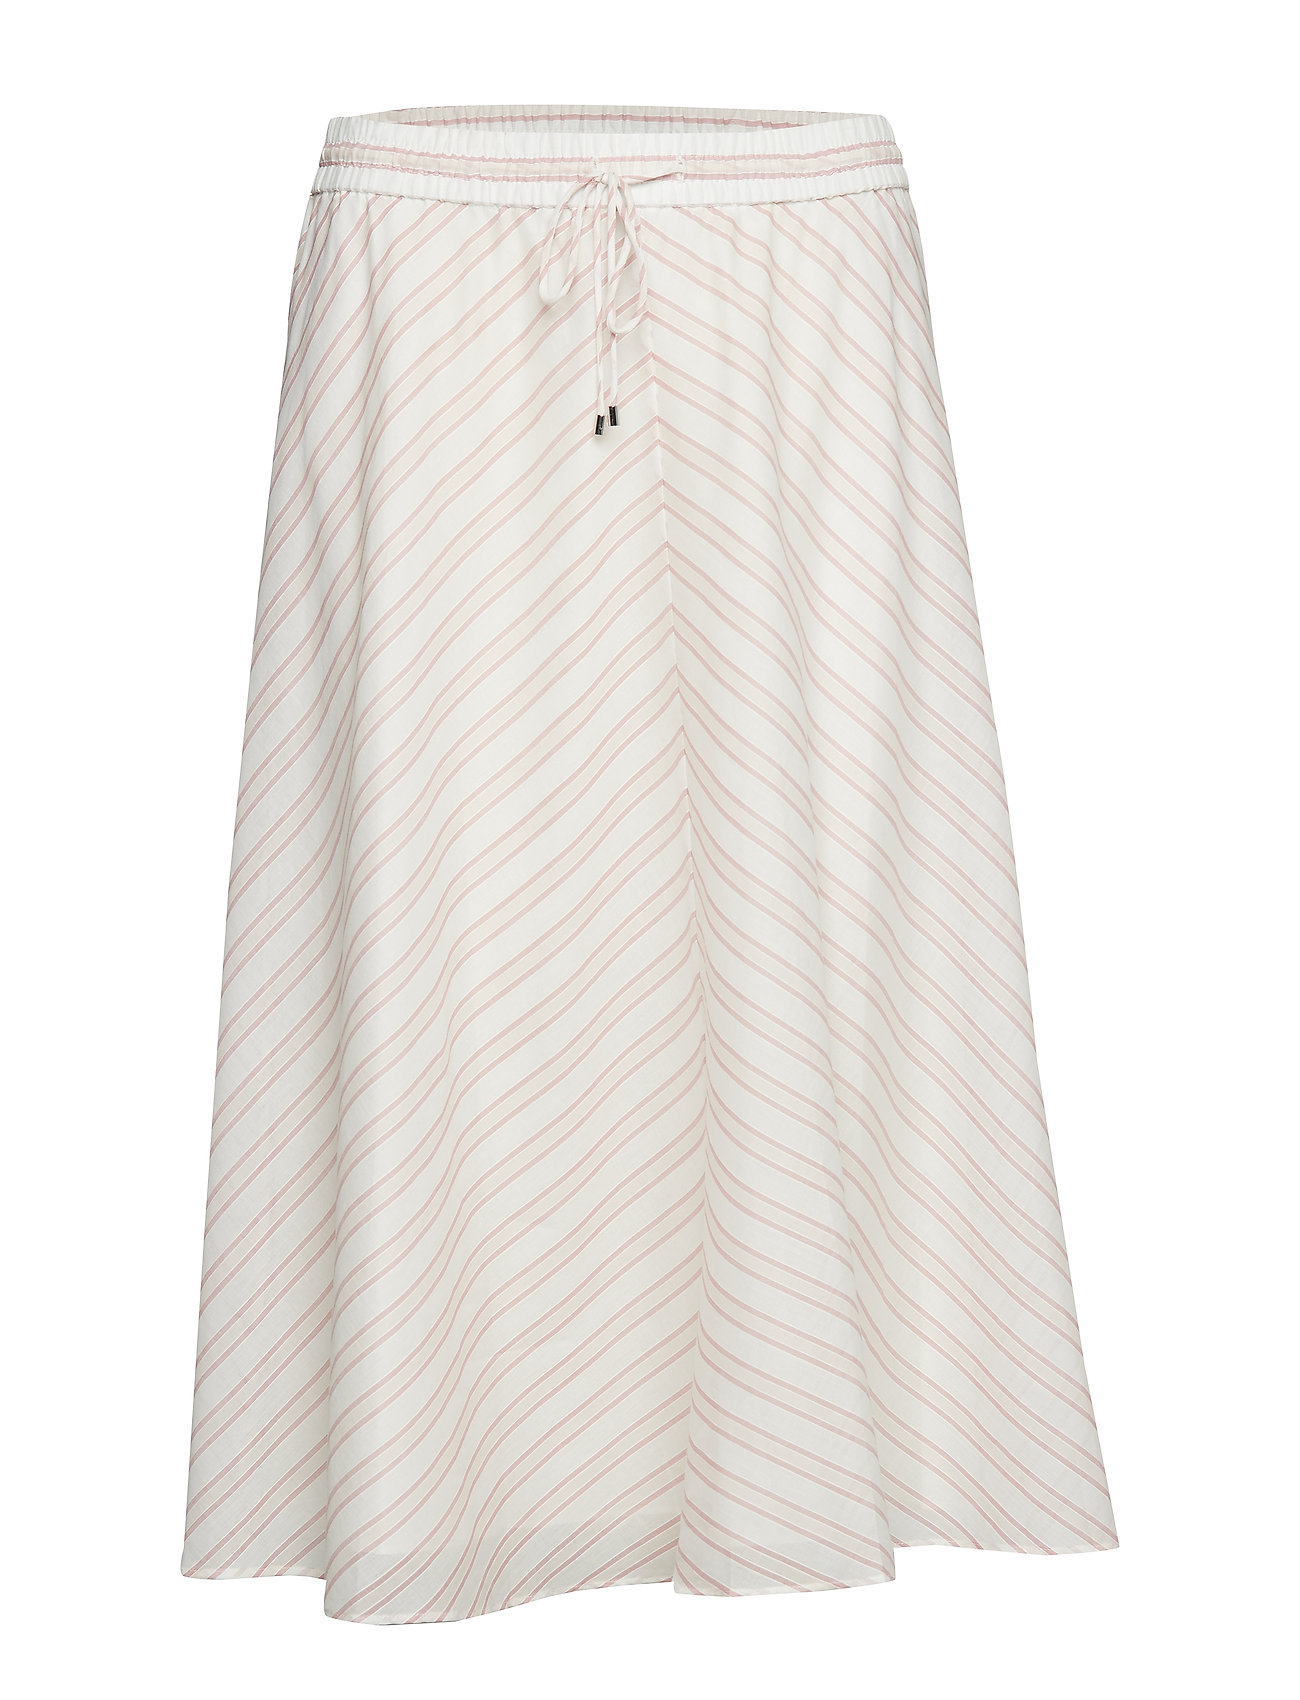 Lauren Ralph Lauren Mitered-Stripe Cotton Skirt - DRY BERRY MULTI